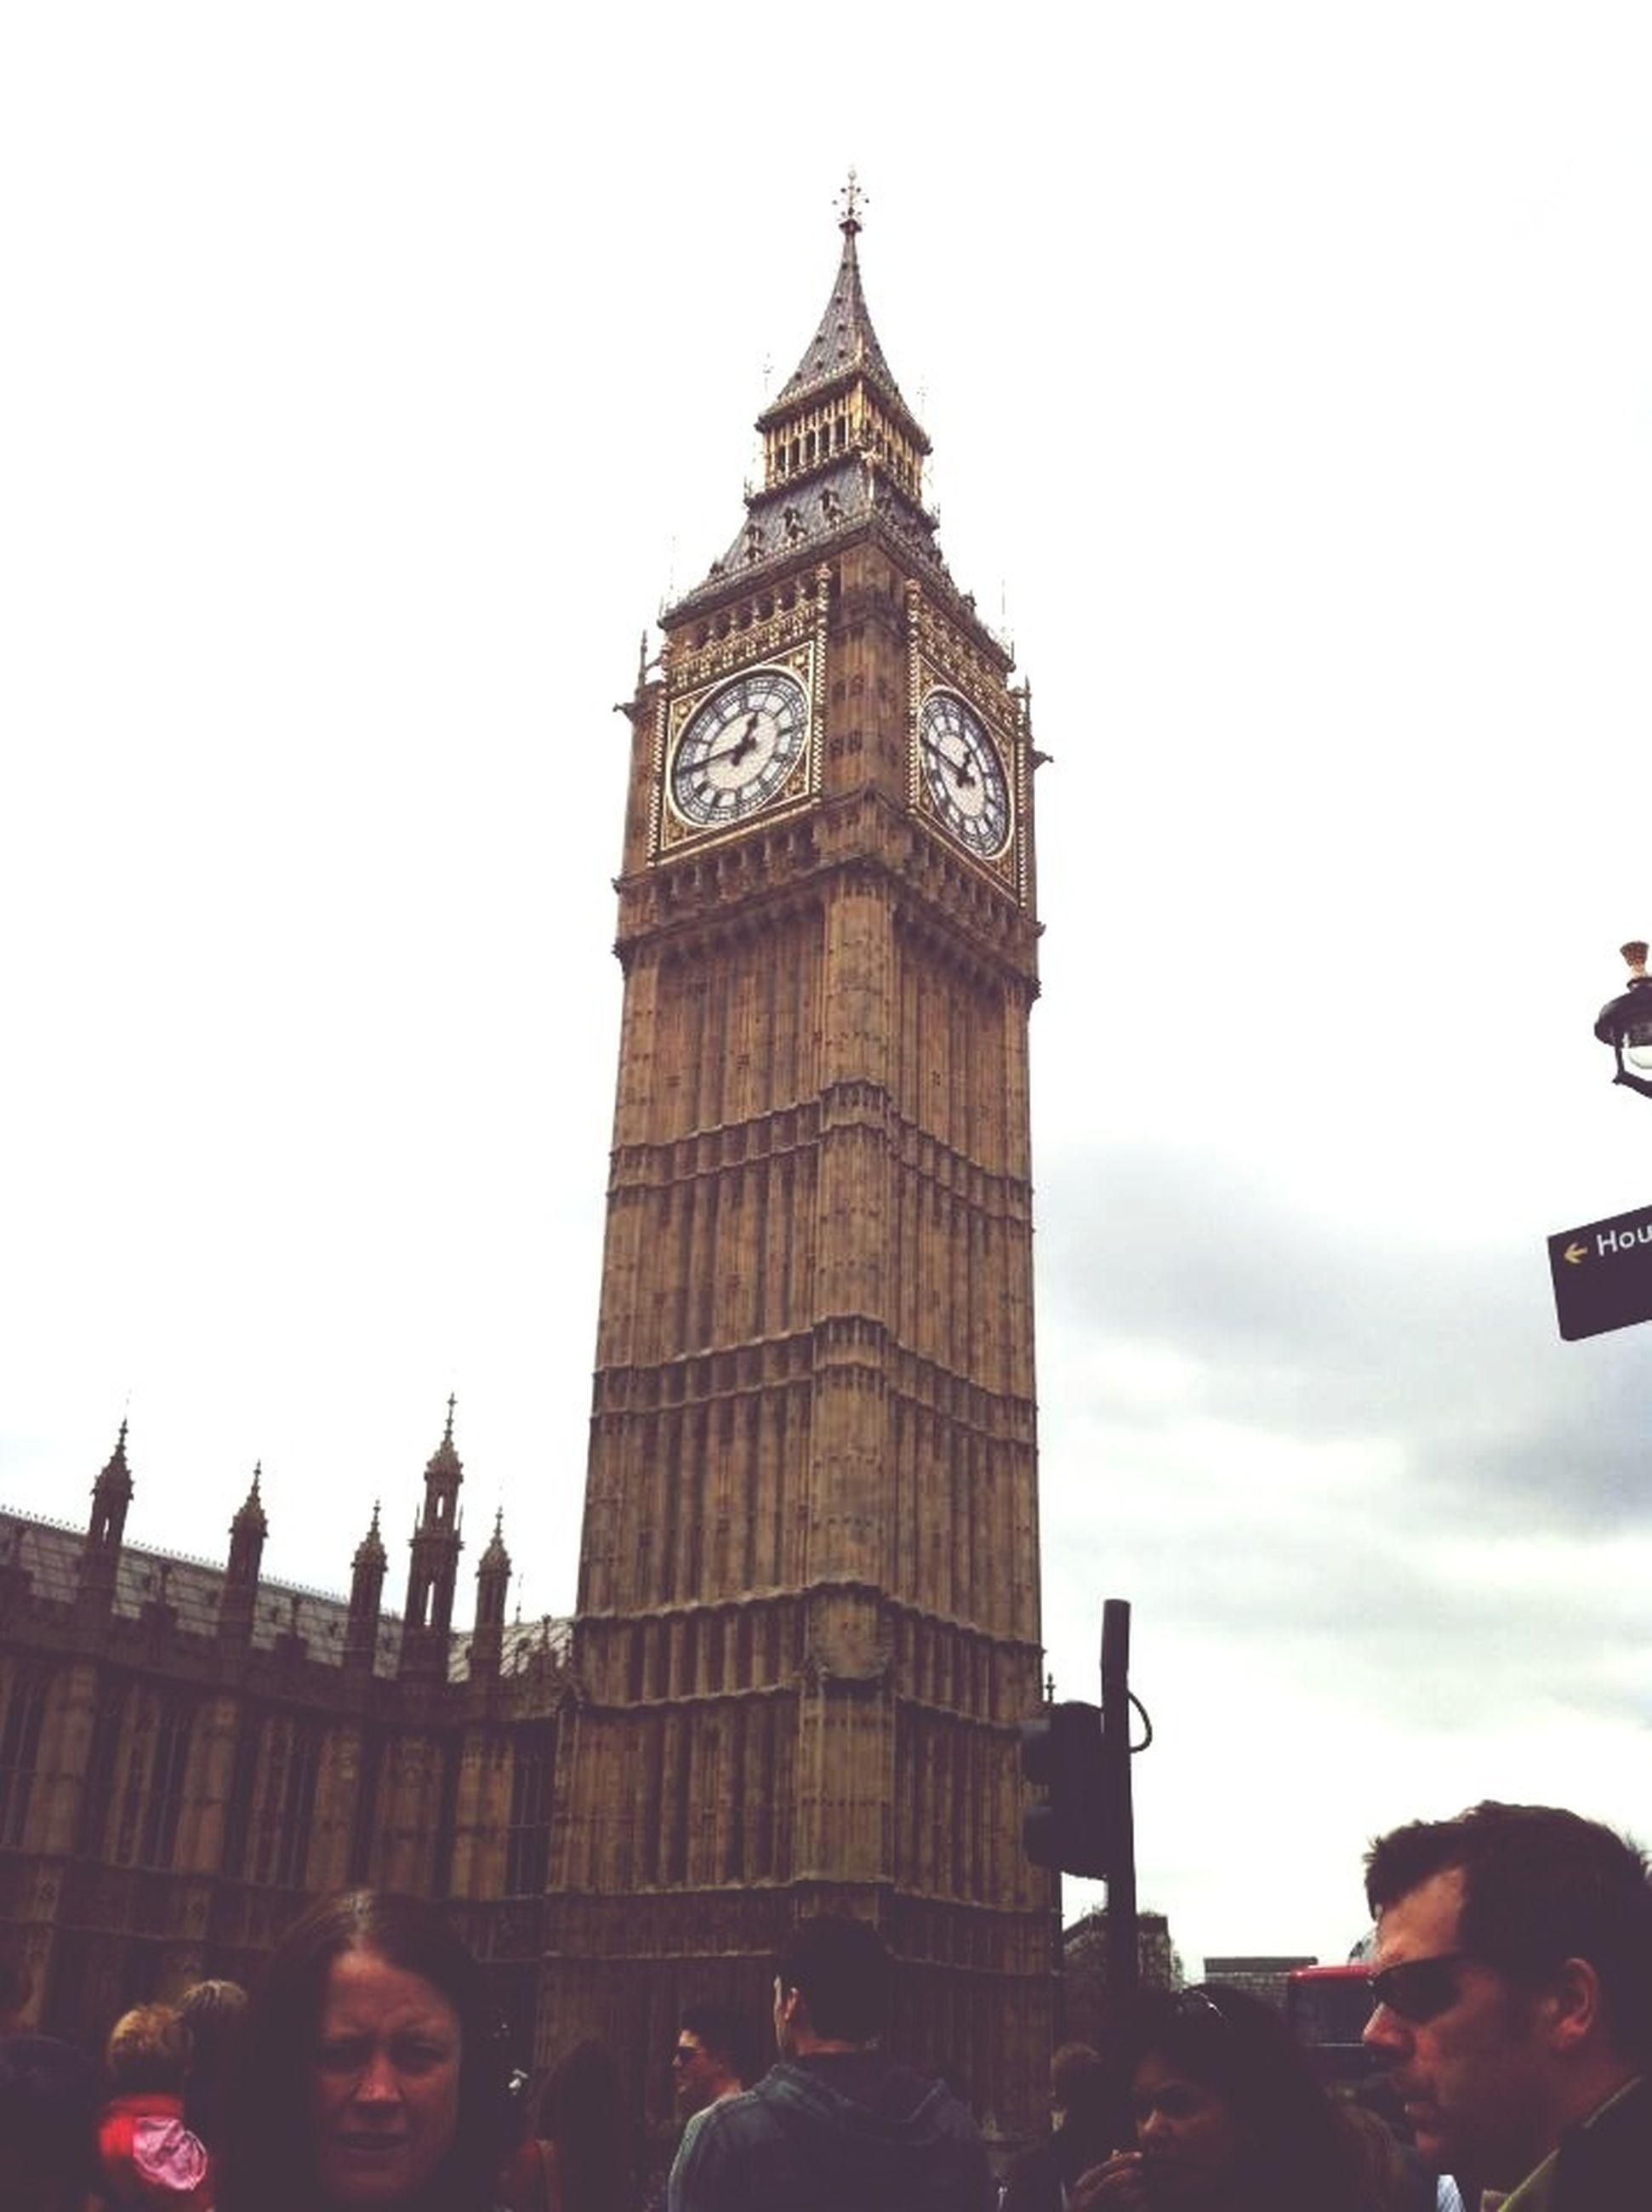 architecture, built structure, building exterior, famous place, travel destinations, international landmark, tower, tourism, low angle view, tall - high, capital cities, travel, clear sky, clock tower, city, history, sky, big ben, large group of people